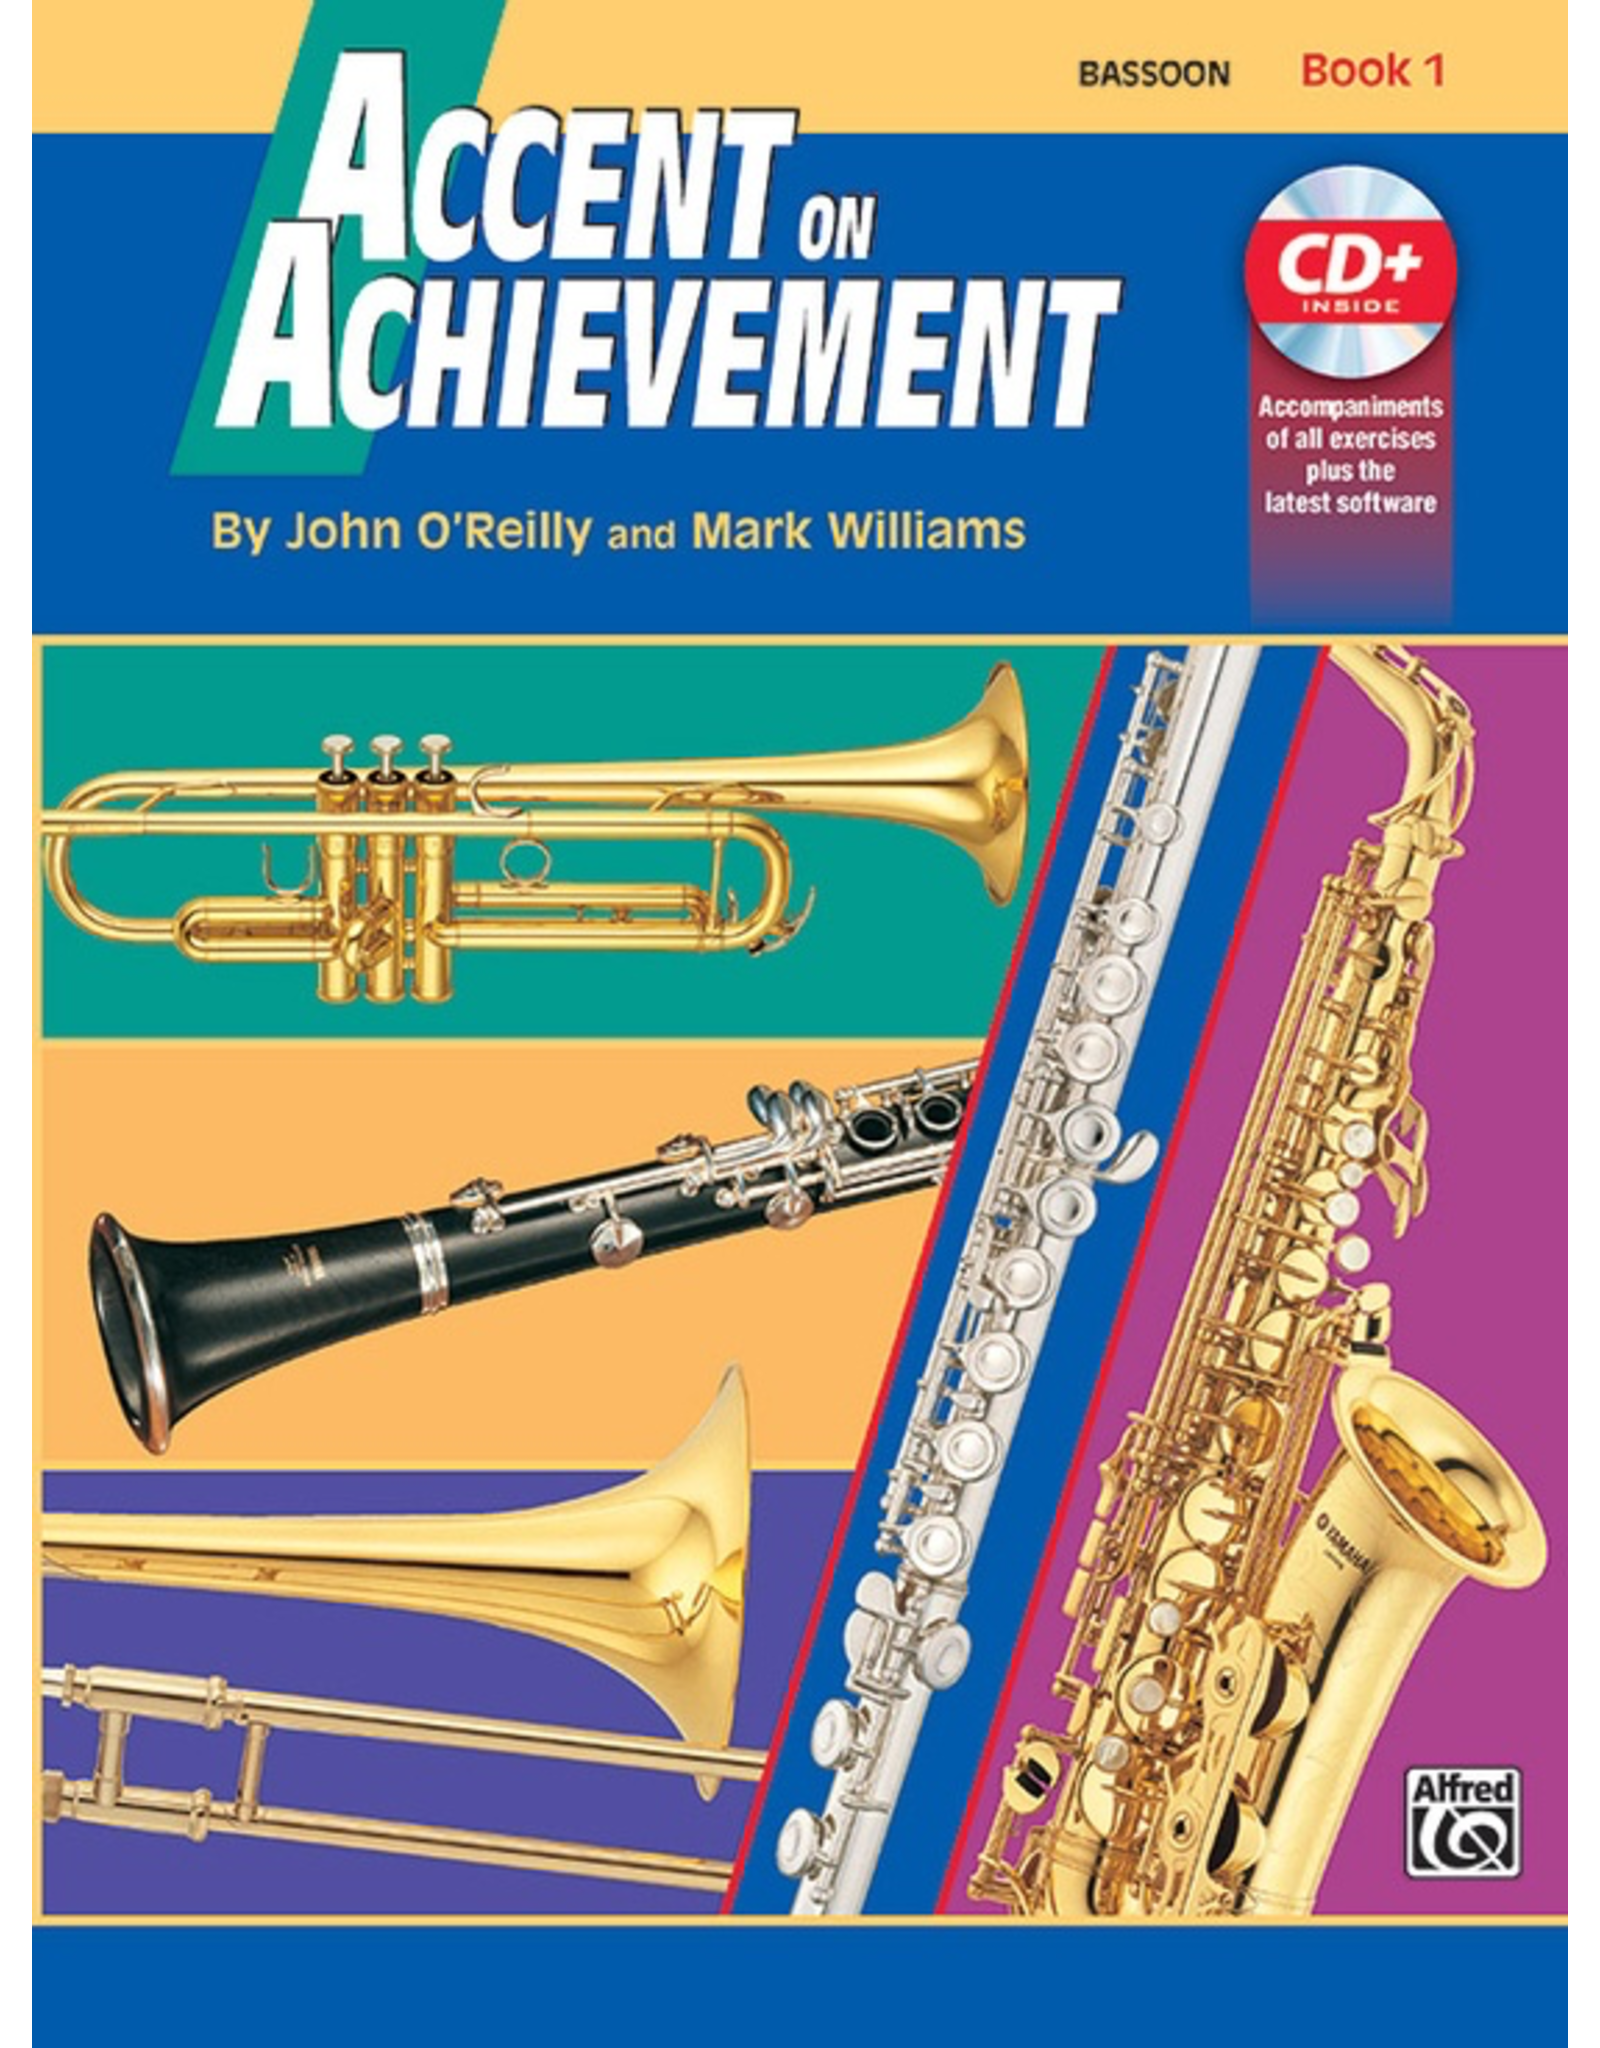 Alfred Accent on Achievement Book 1 with CD, Bassoon